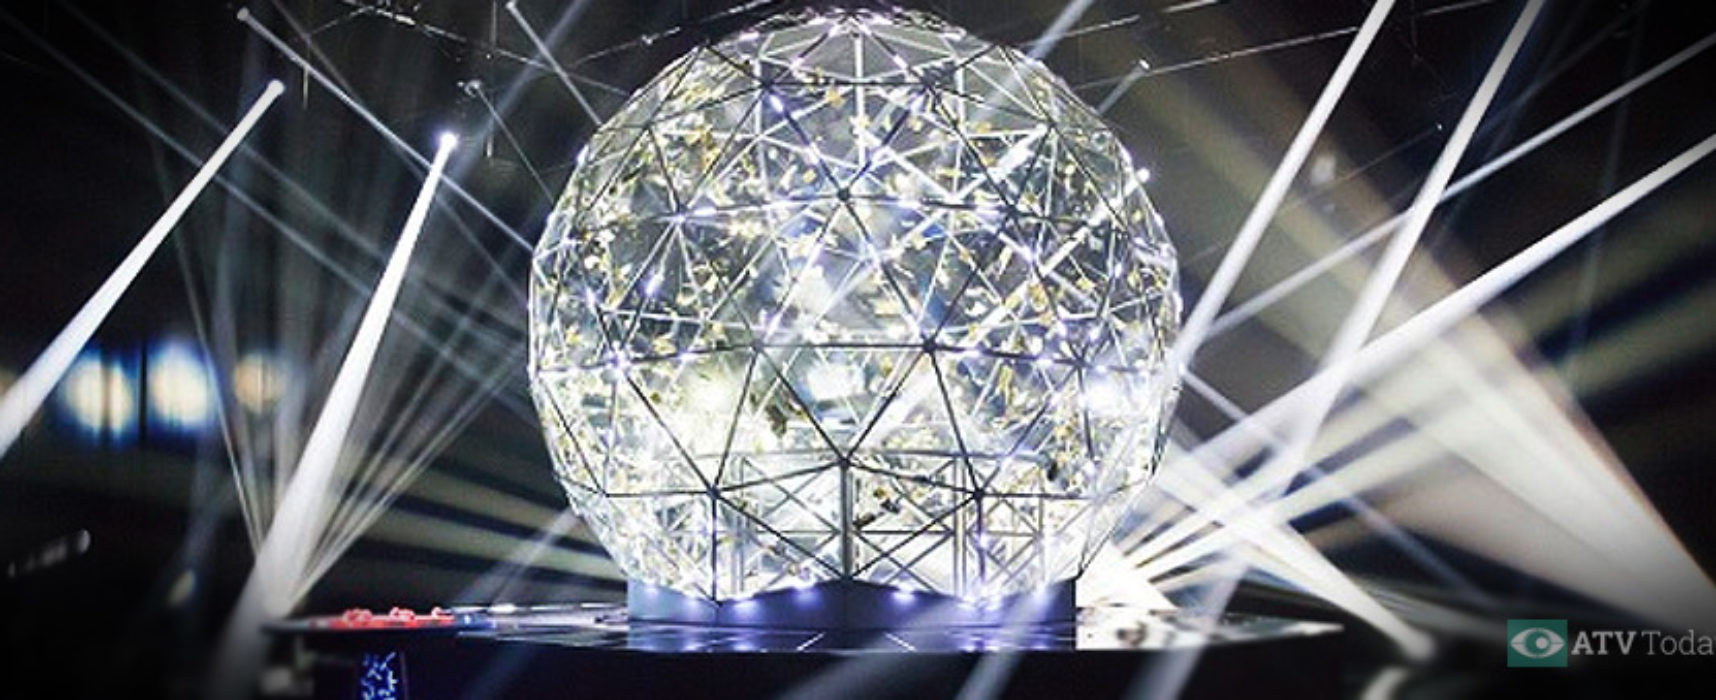 The first episode of the new Crystal Maze with Richard Ayoade airs tonight